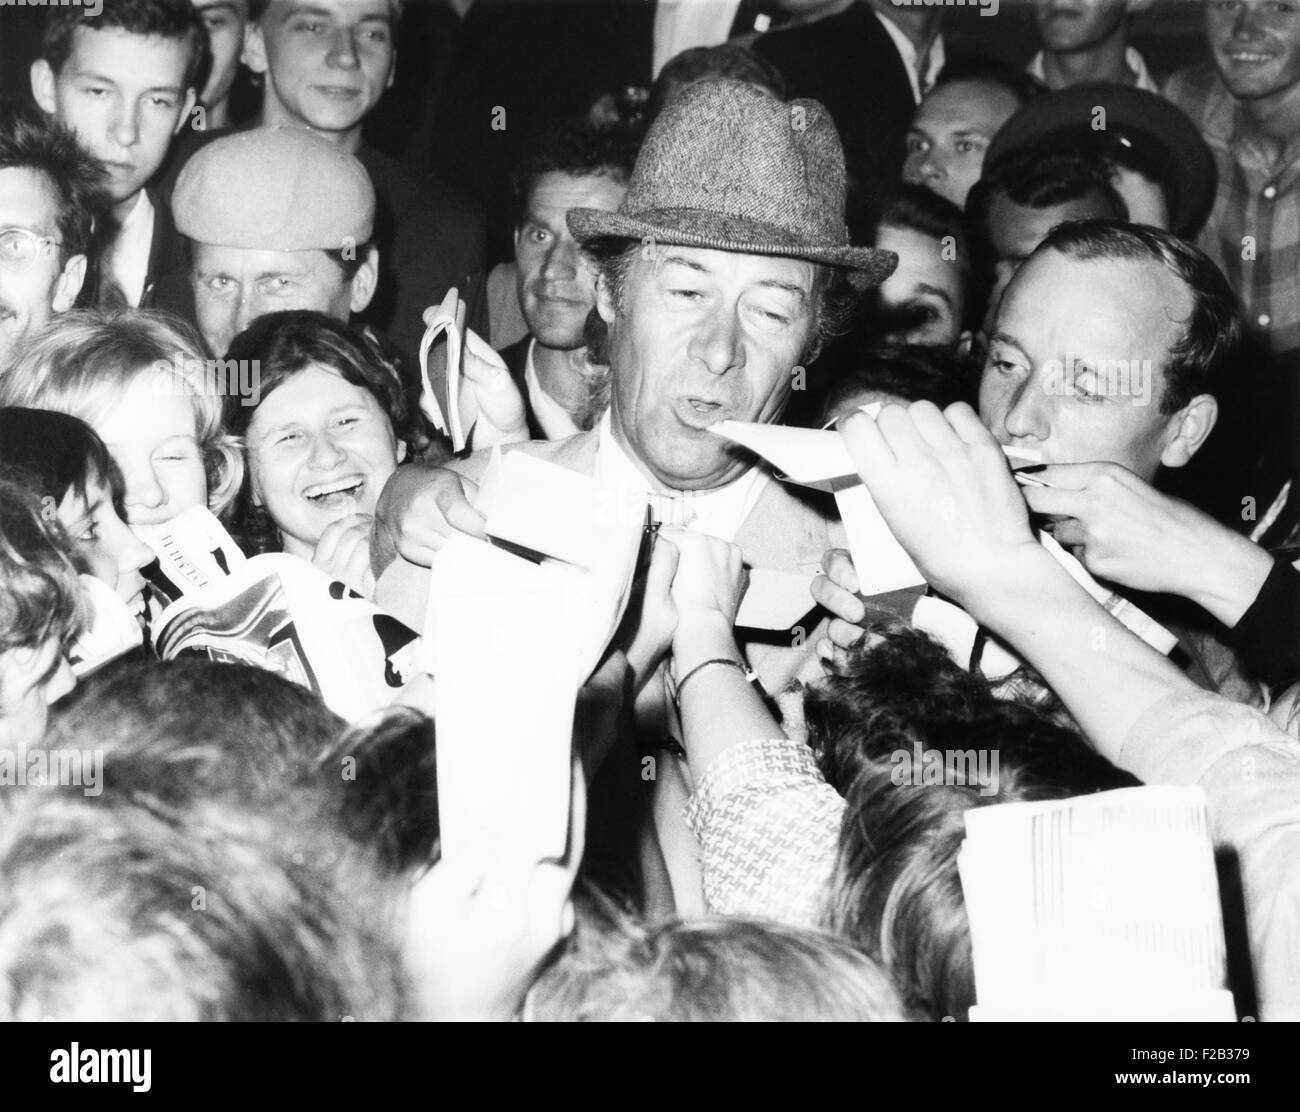 British Actor Rex Harrison stepped into a swarm of Russian autograph seekers outside his hotel. Harrison was in - Stock Image